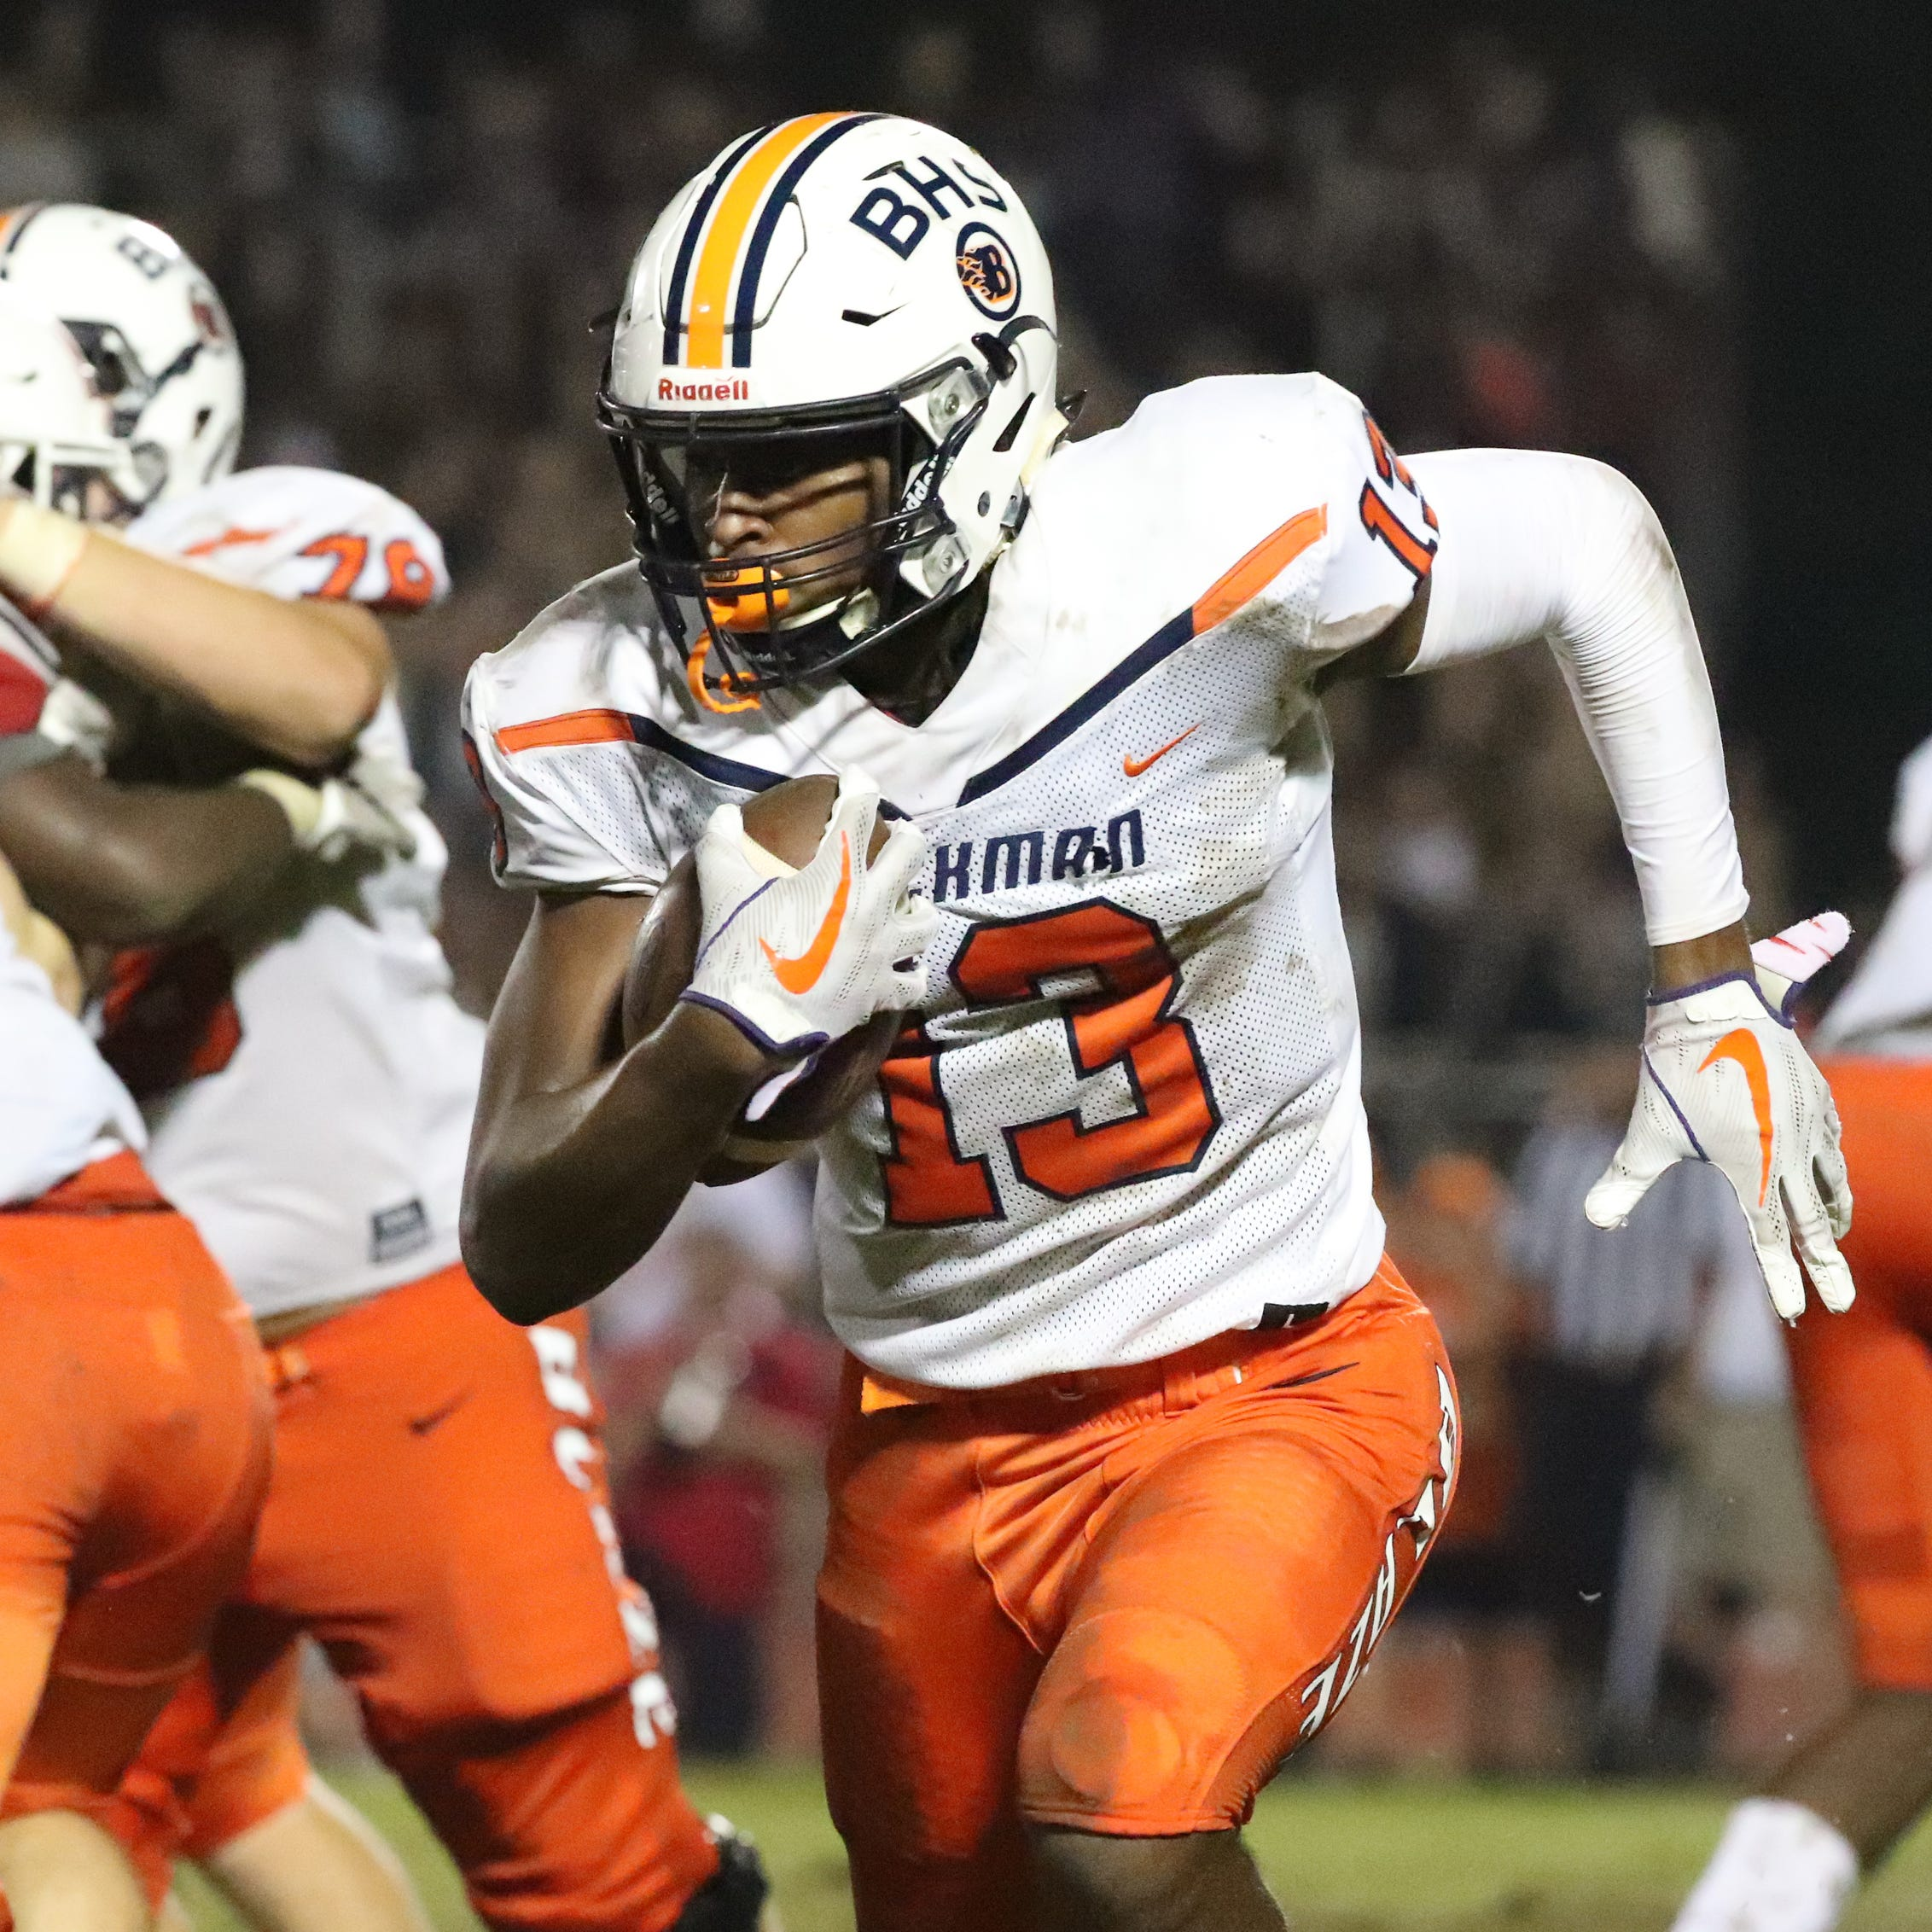 Tennessee high school football commitments for the Class of 2019